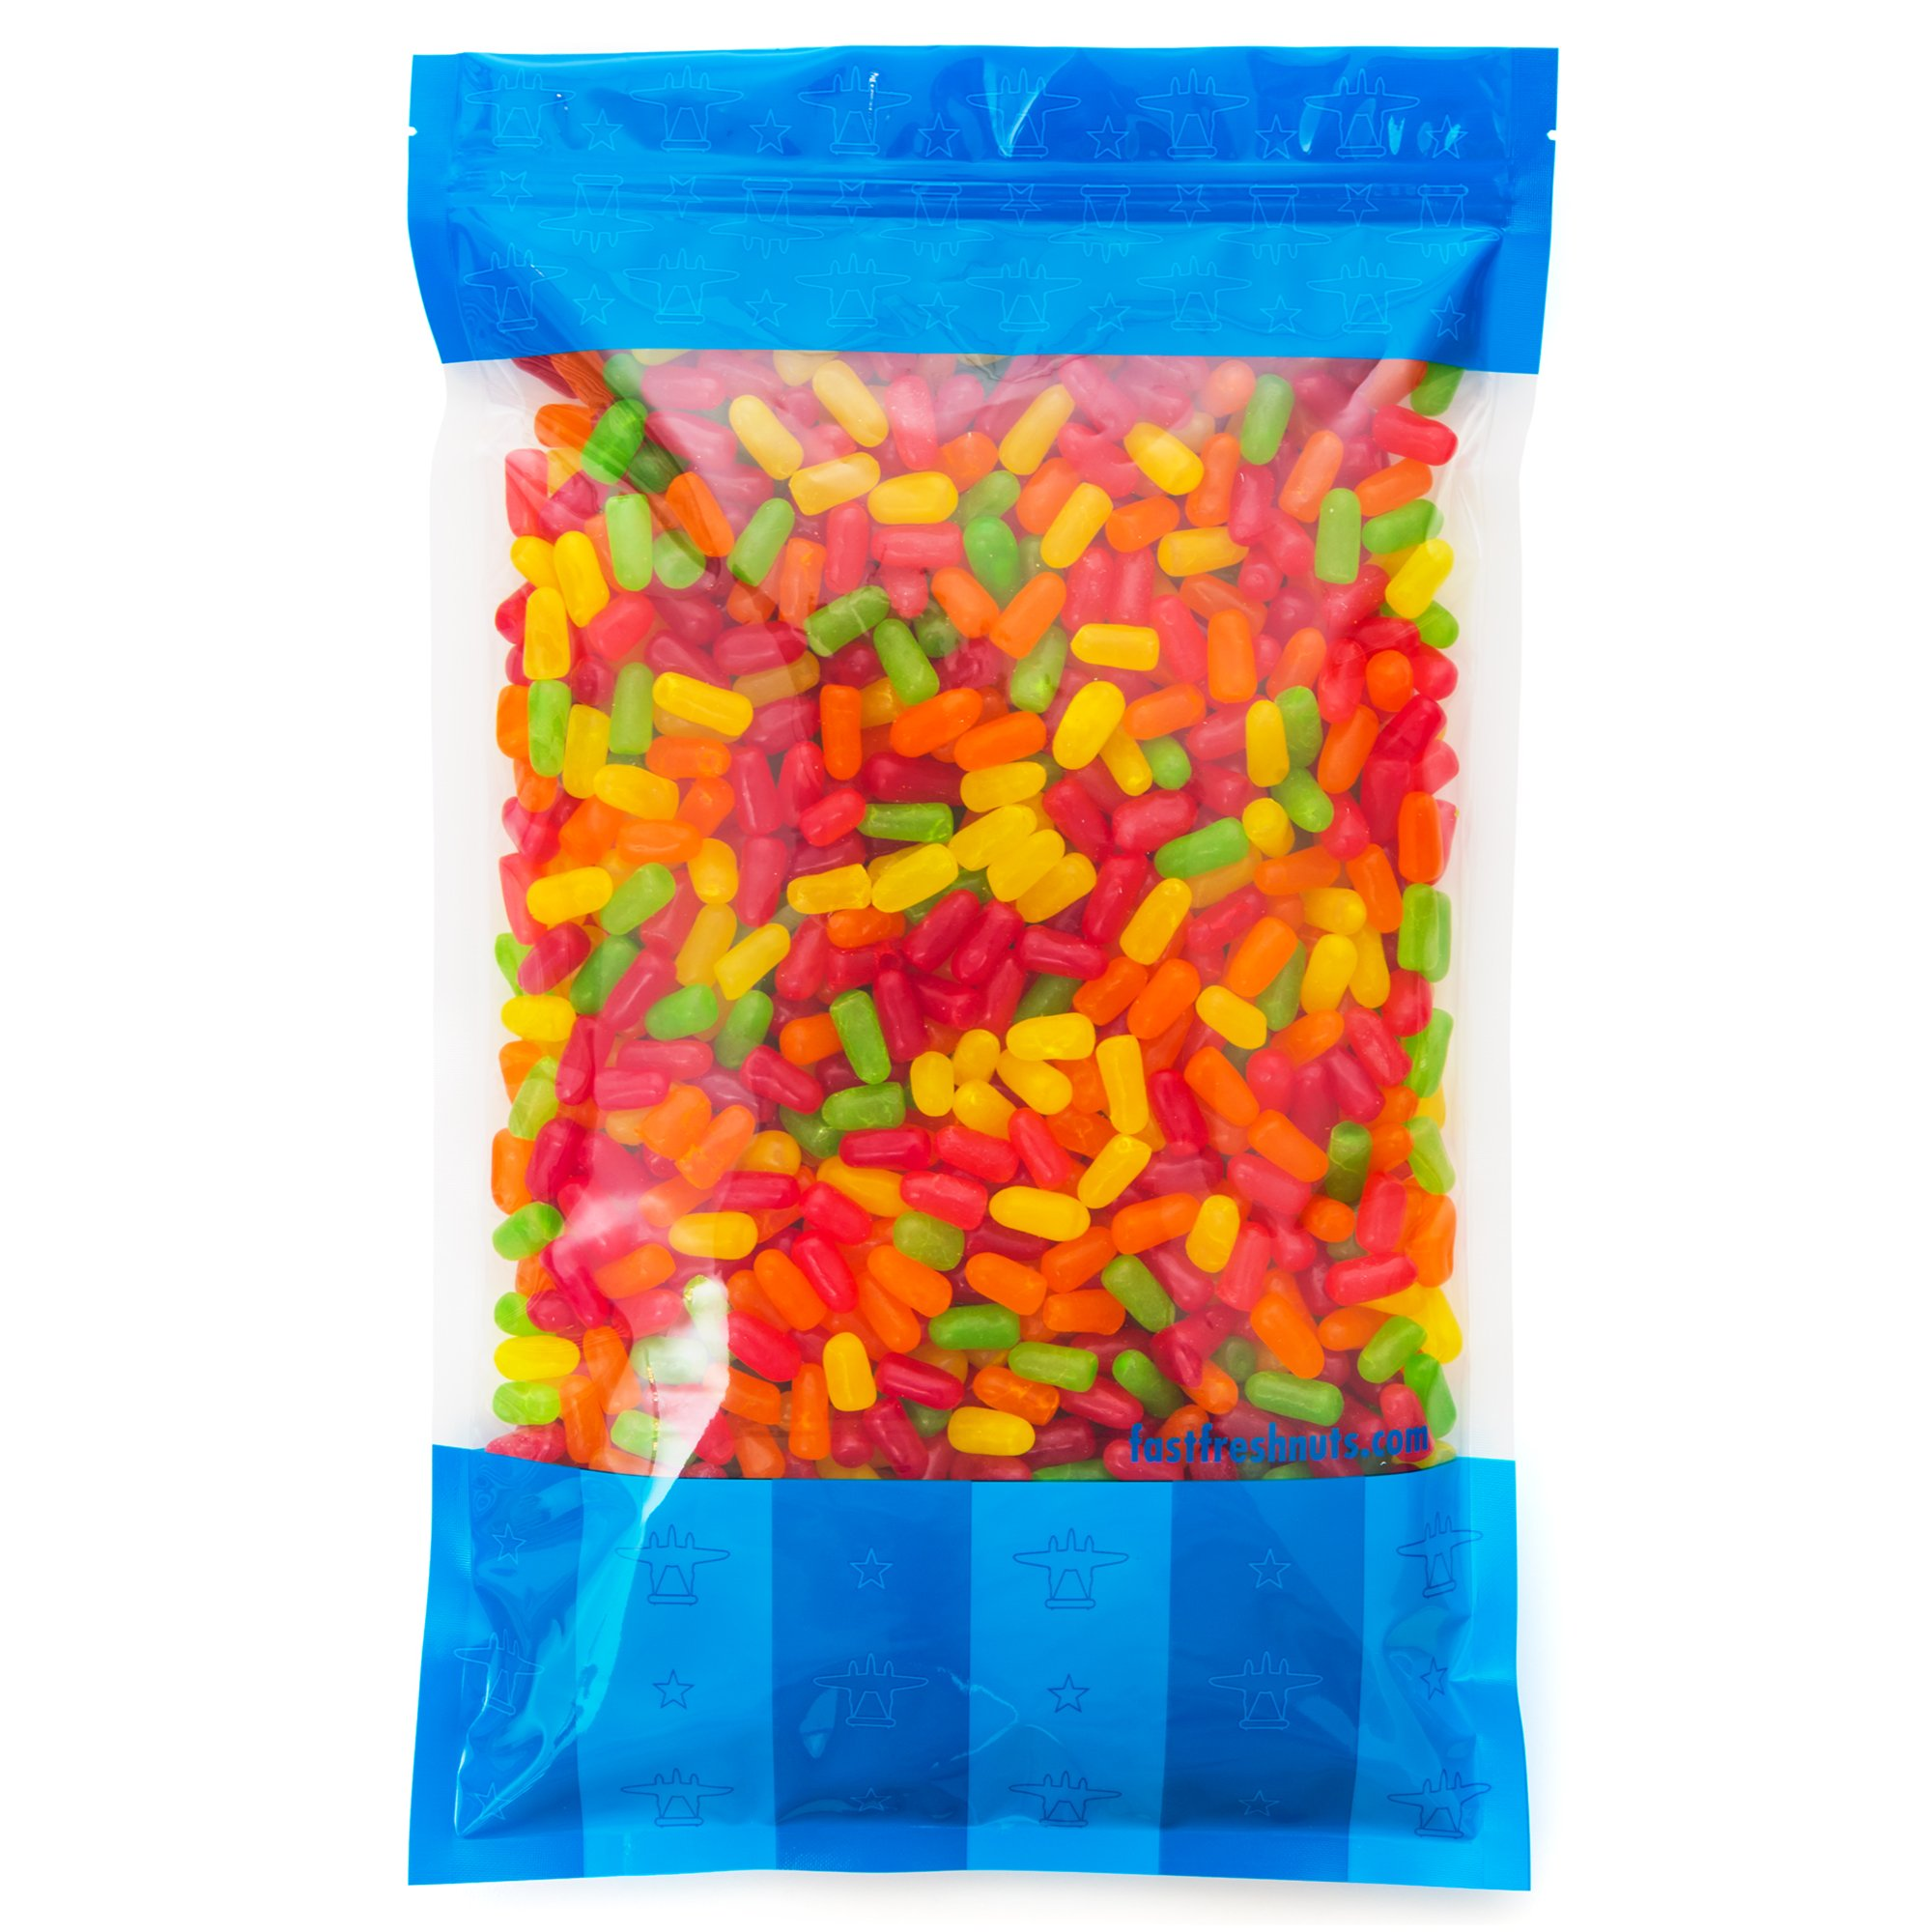 Bulk Mike & Ikes in an 8 lb Resealable Bomber Bag - Fresh, Tasty Treats - Great for Office Candy Bowls - Wholesale - Refill Candy Vending Machines - Holidays - Parties by Fast Fresh Nuts